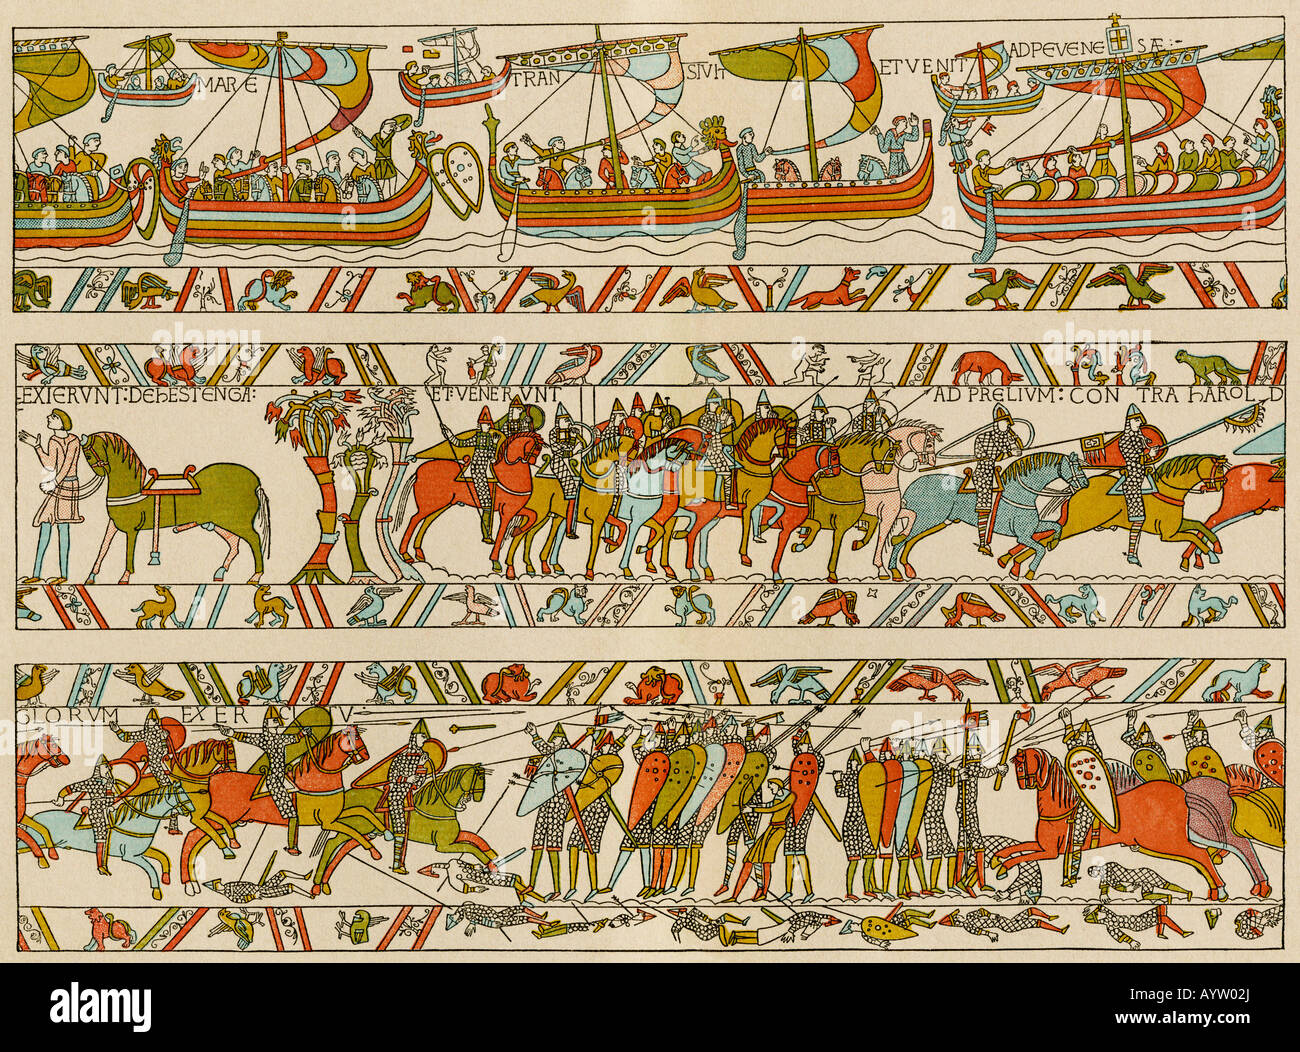 Norman invasion of England in 1066 A D. Color lithograph reproduction of a portion of the Bayeux Tapestry - Stock Image